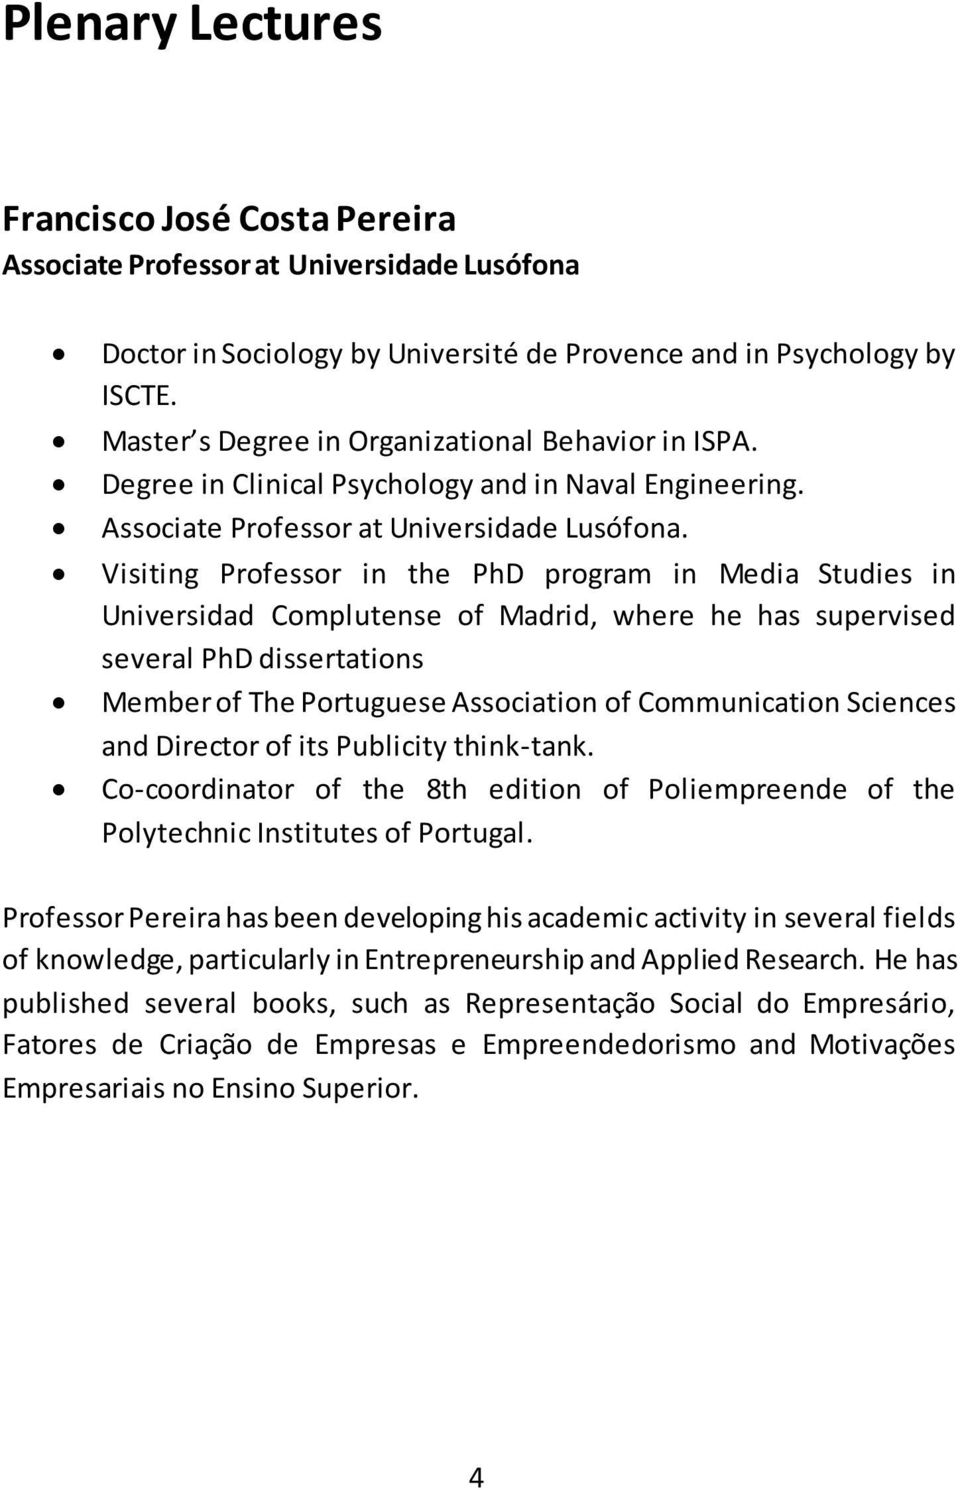 Visiting Professor in the PhD program in Media Studies in Universidad Complutense of Madrid, where he has supervised several PhD dissertations Member of The Portuguese Association of Communication